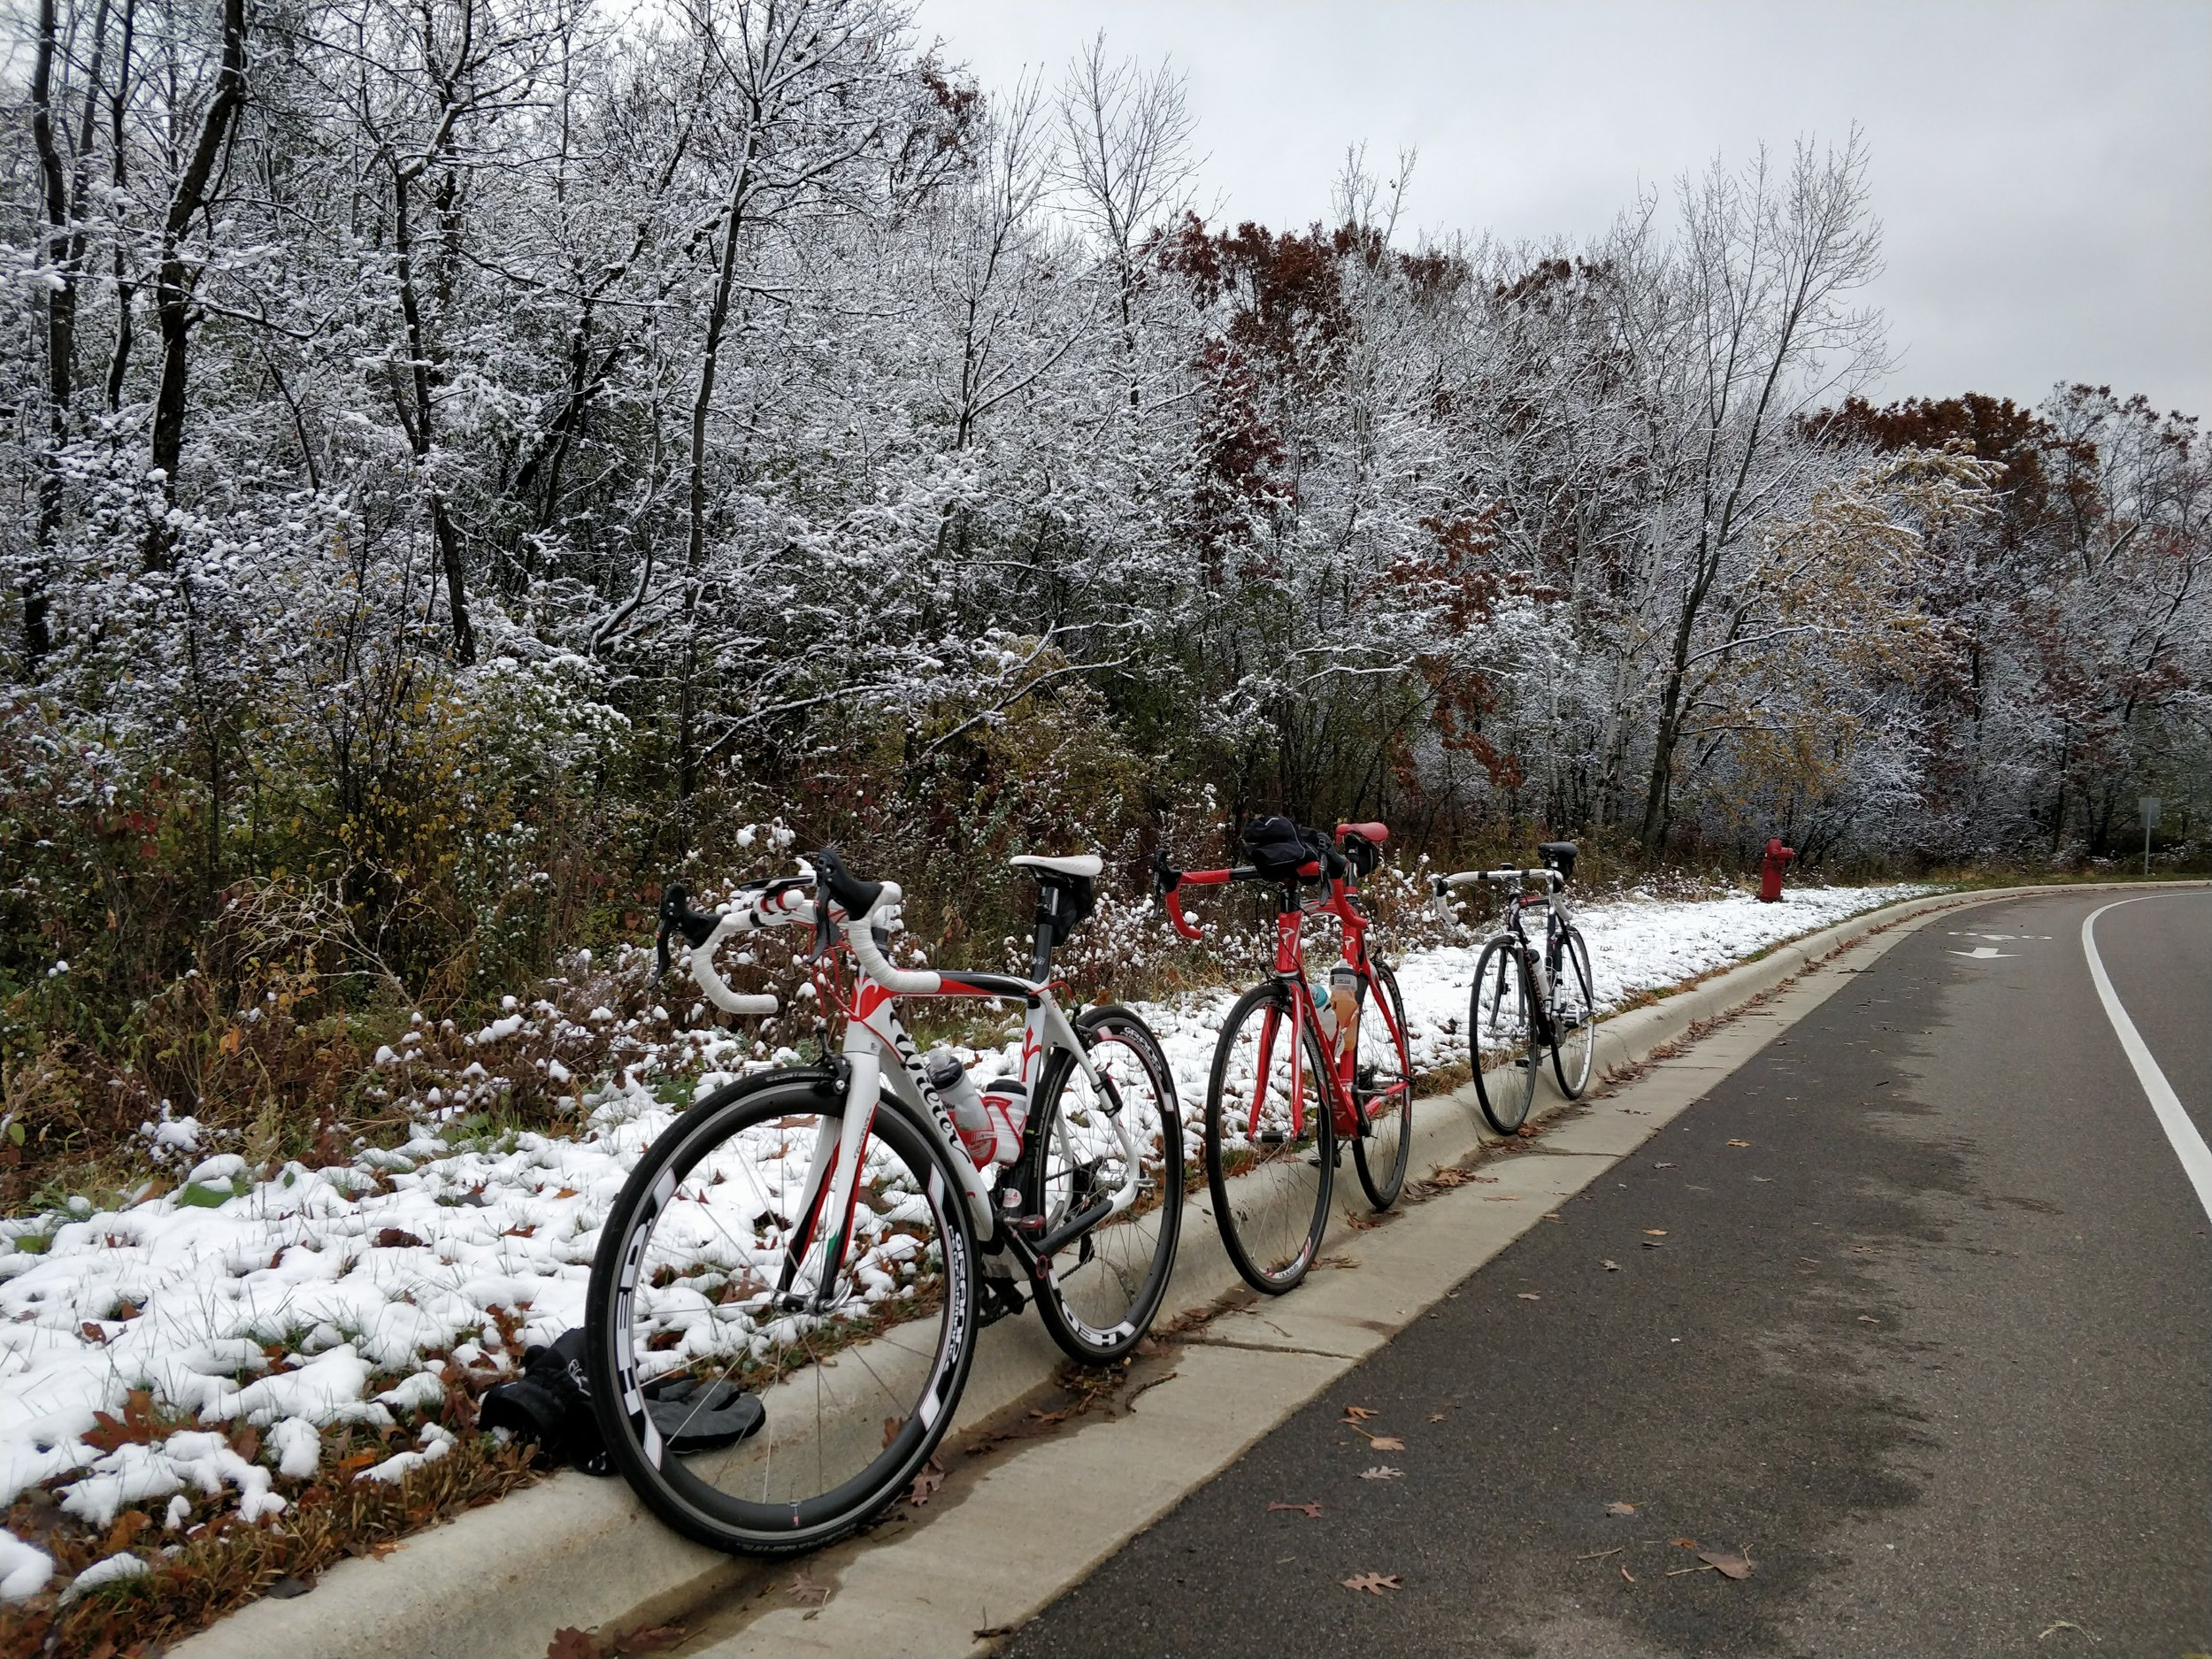 Last week, Saturday, October 28 was the first cold-weather ride of the Fall season, with temps around 35 degrees Fahrenheit.